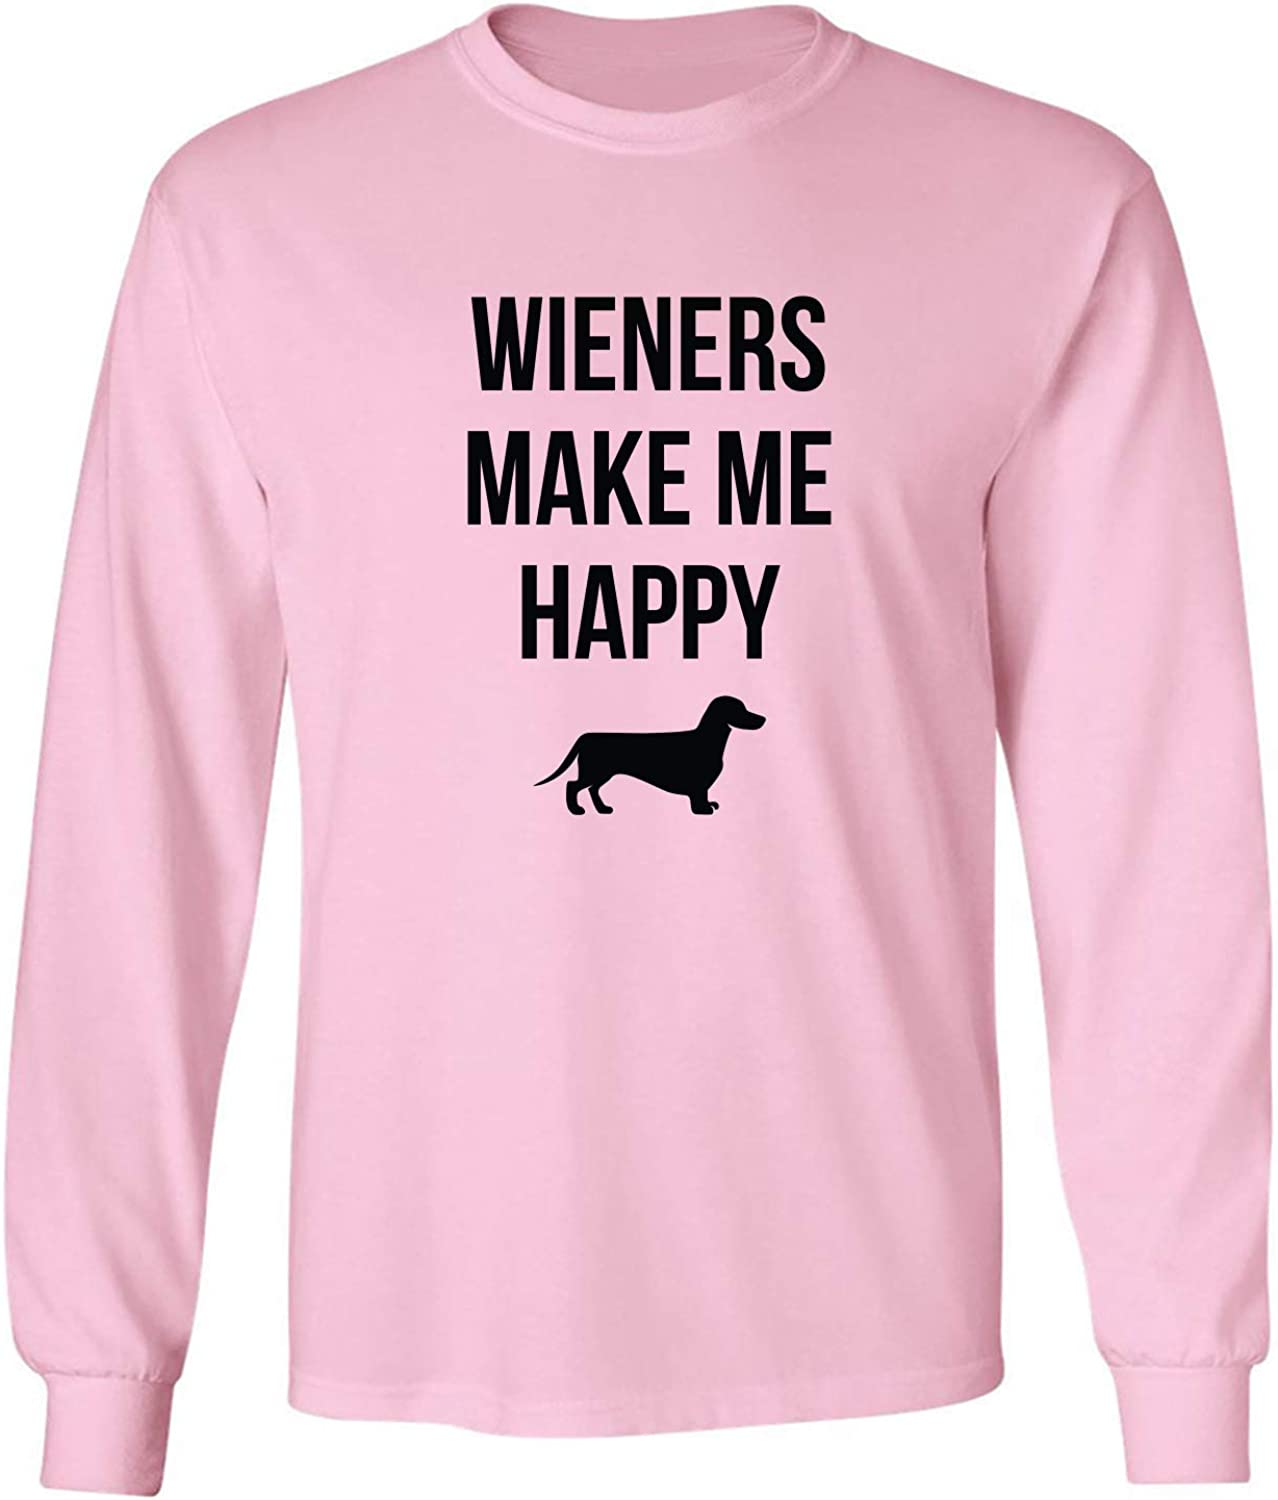 Wieners Make Me Happy Adult Long Sleeve T-Shirt in Pink - XXXXX-Large